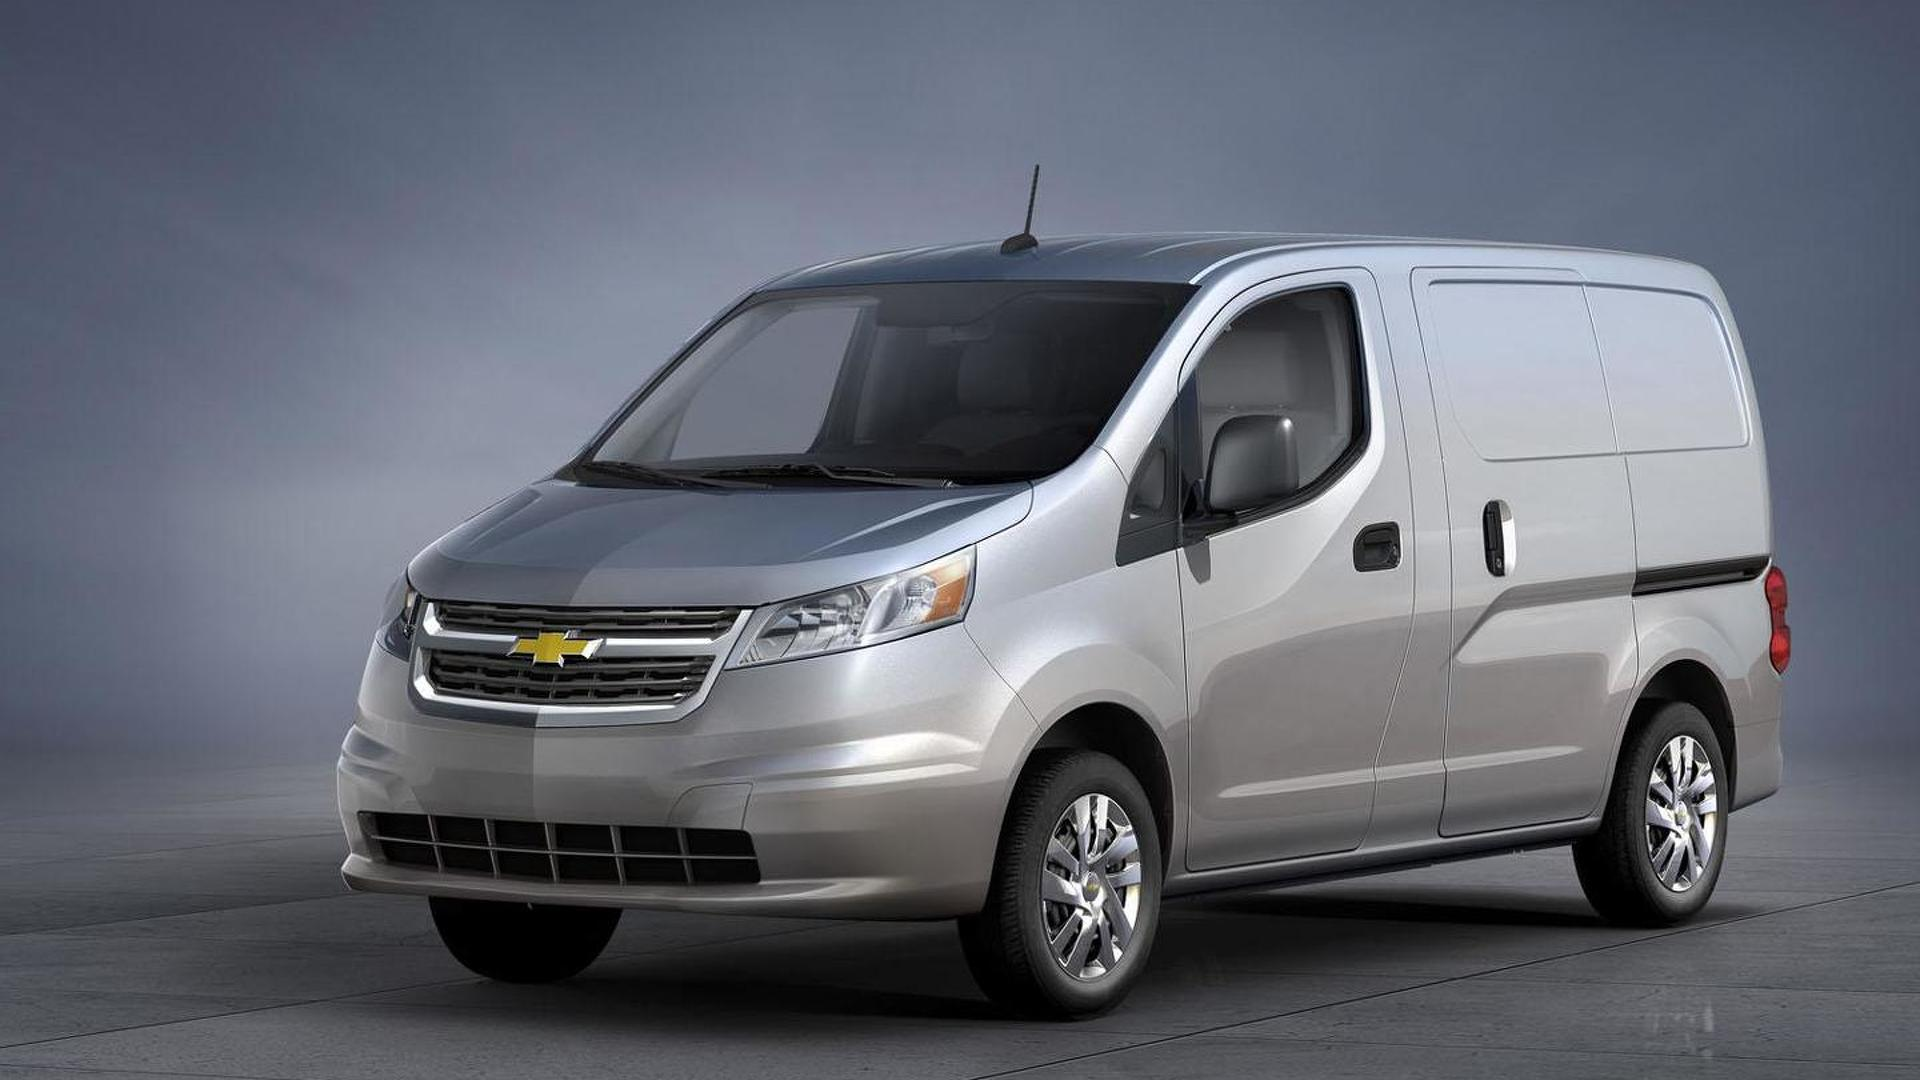 Chevrolet removed one model